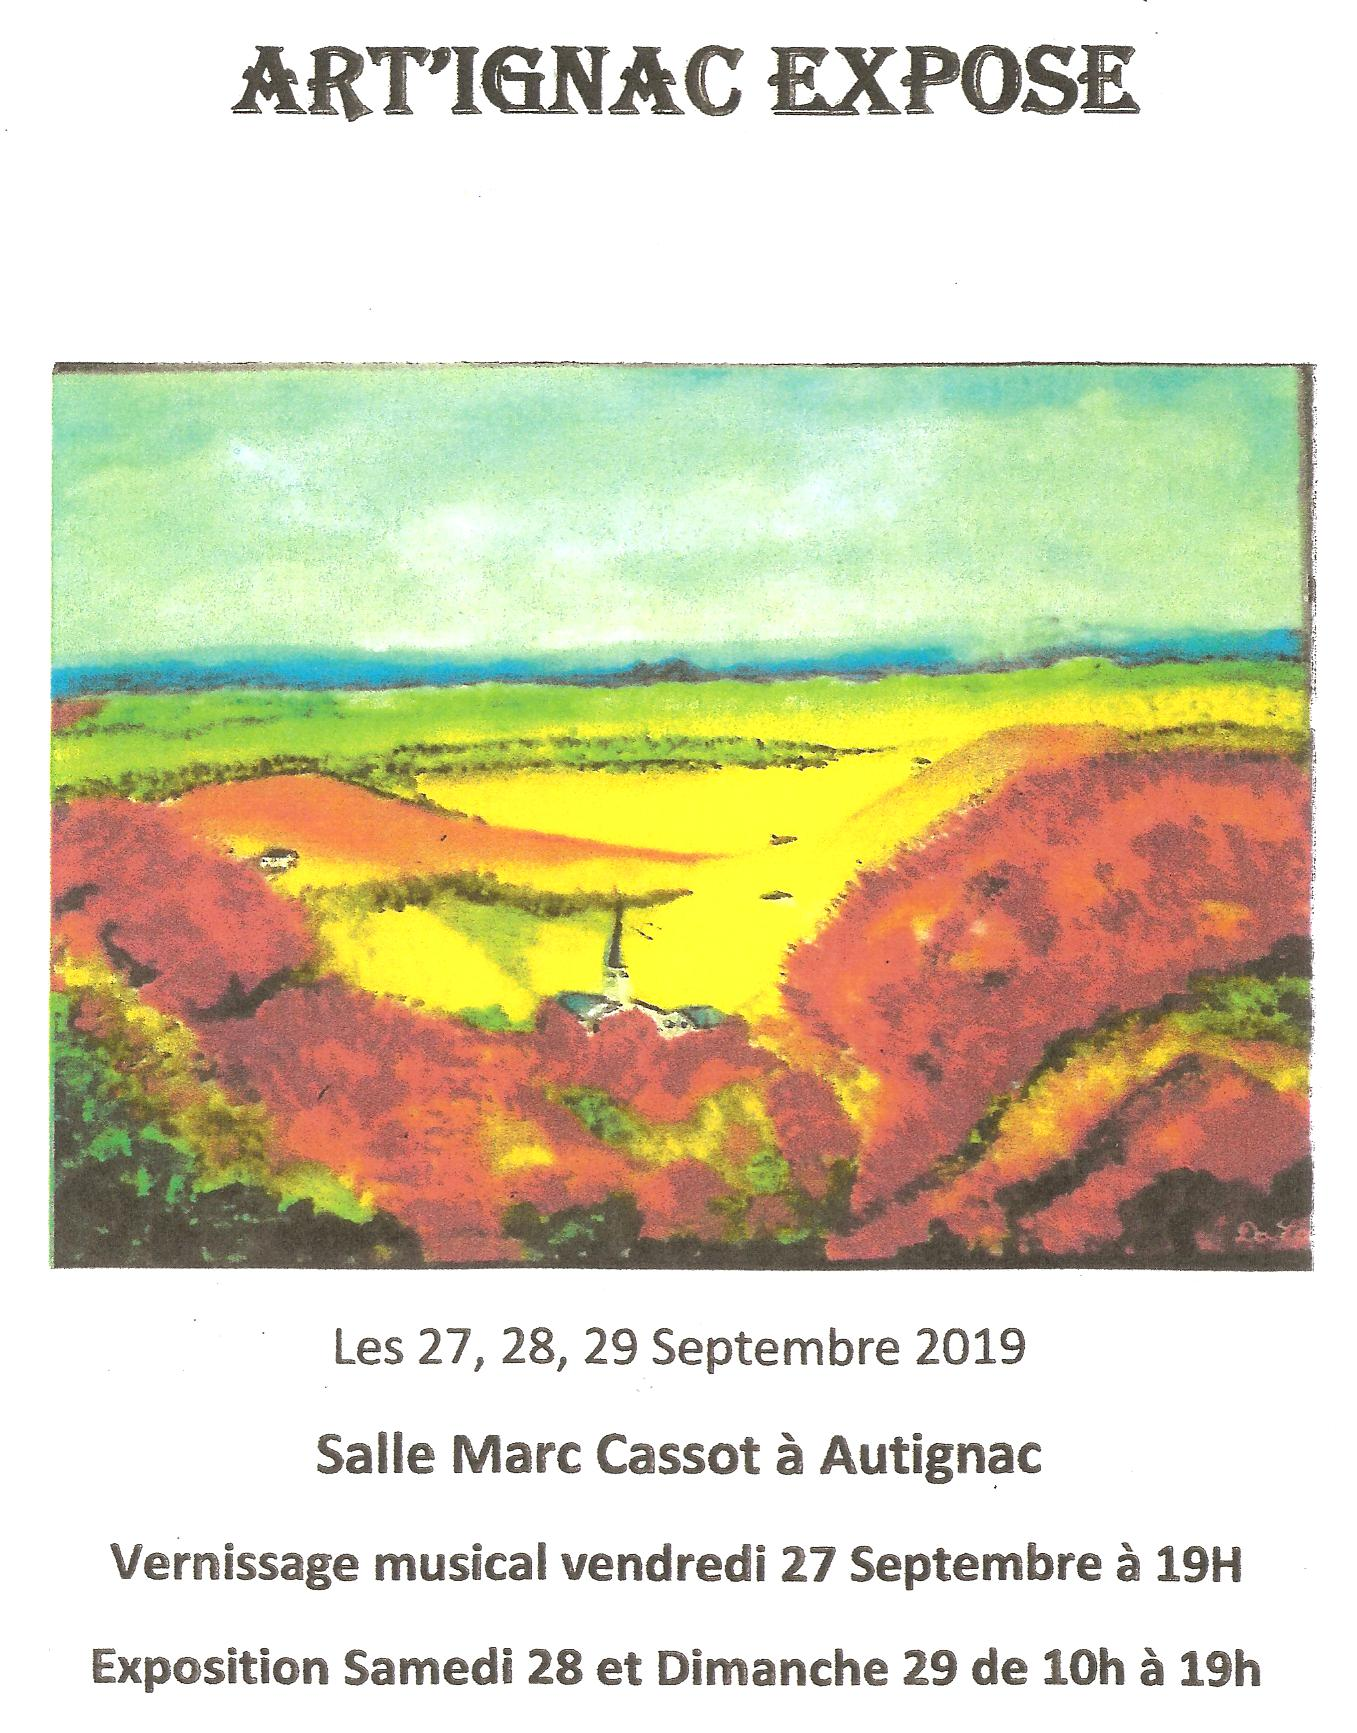 Art'ignac vernissage 27 sept 19 h